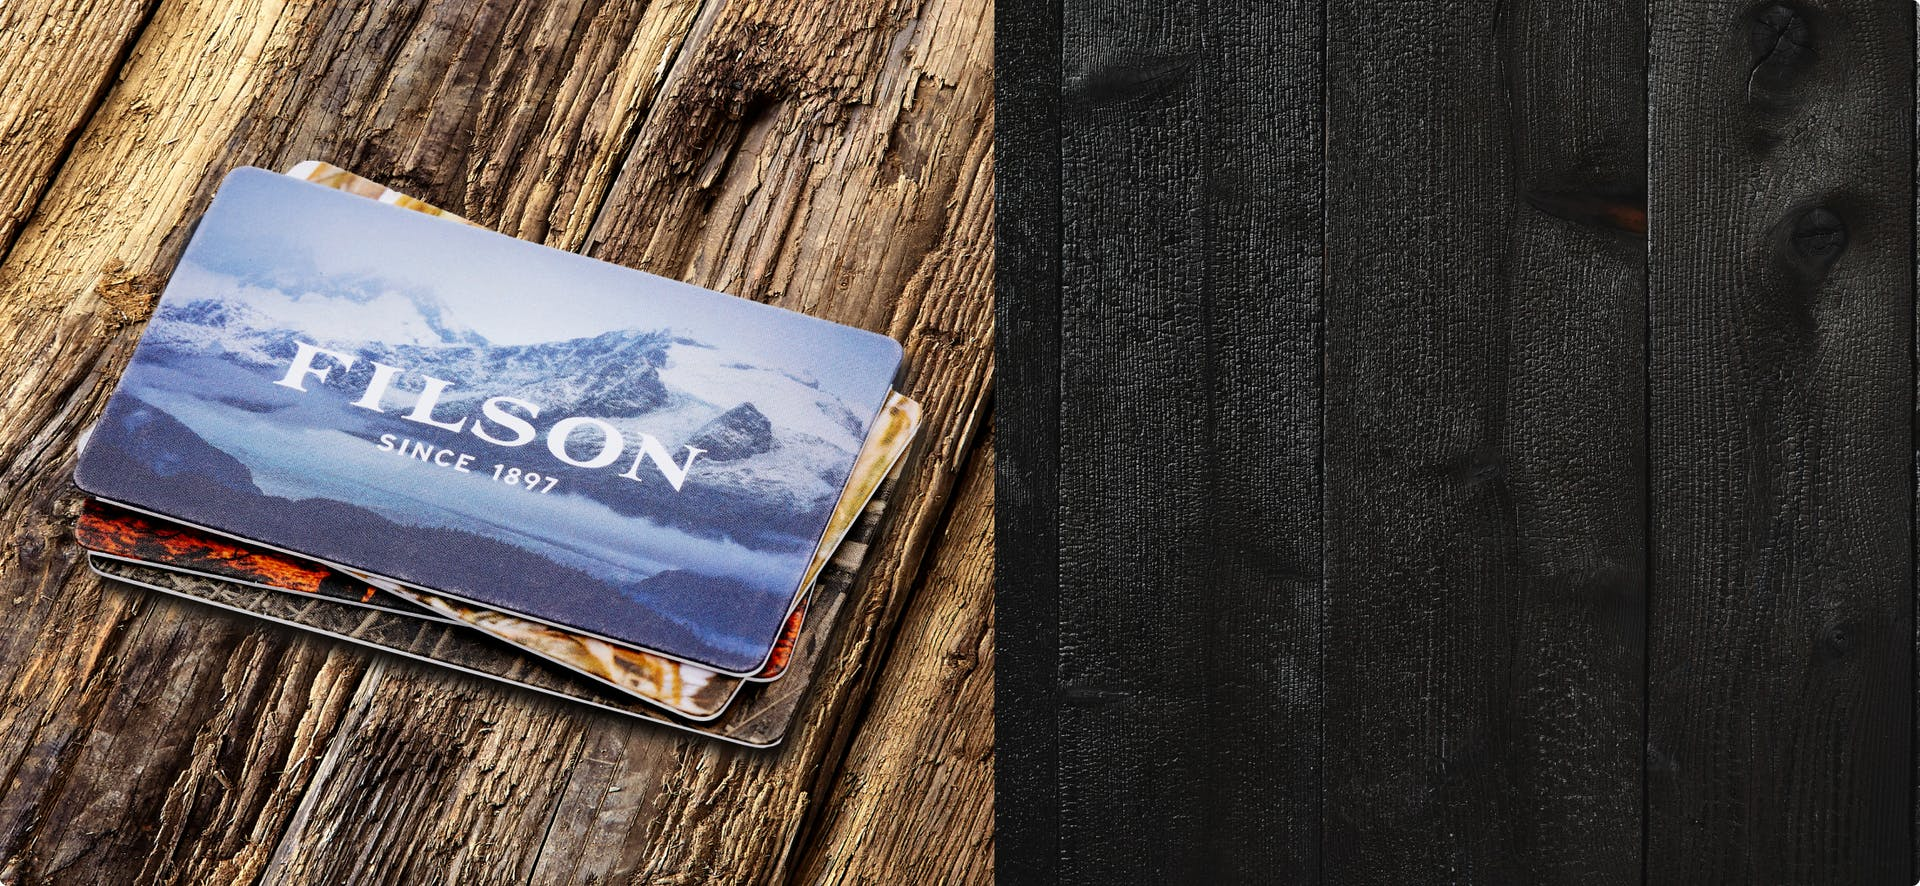 Woman wearing Filson gear with mountains in the backdrop